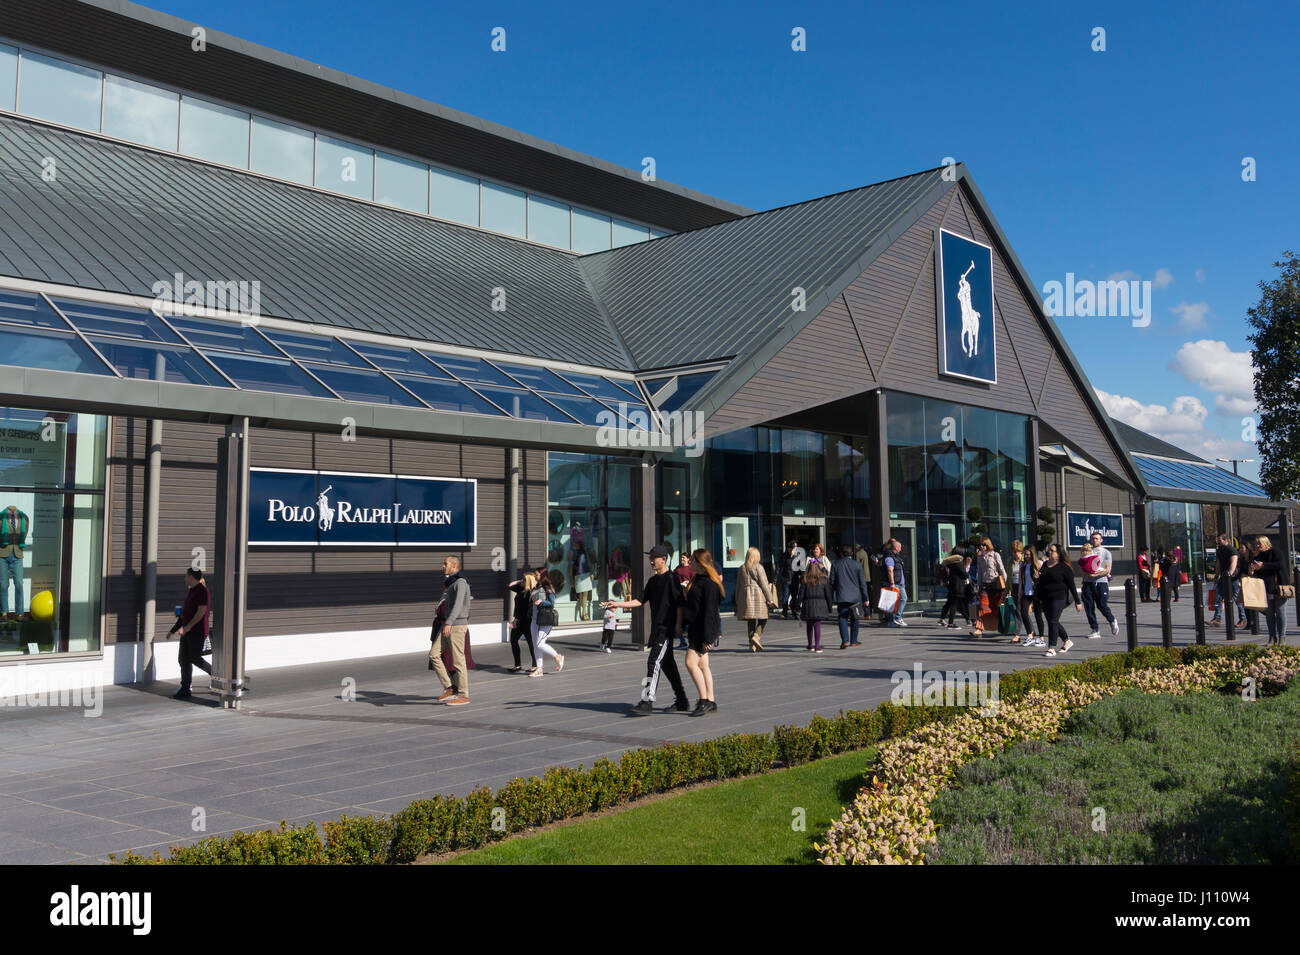 Ralph Lauren Shop at Cheshire Oaks Designer Outlet - Stock Image